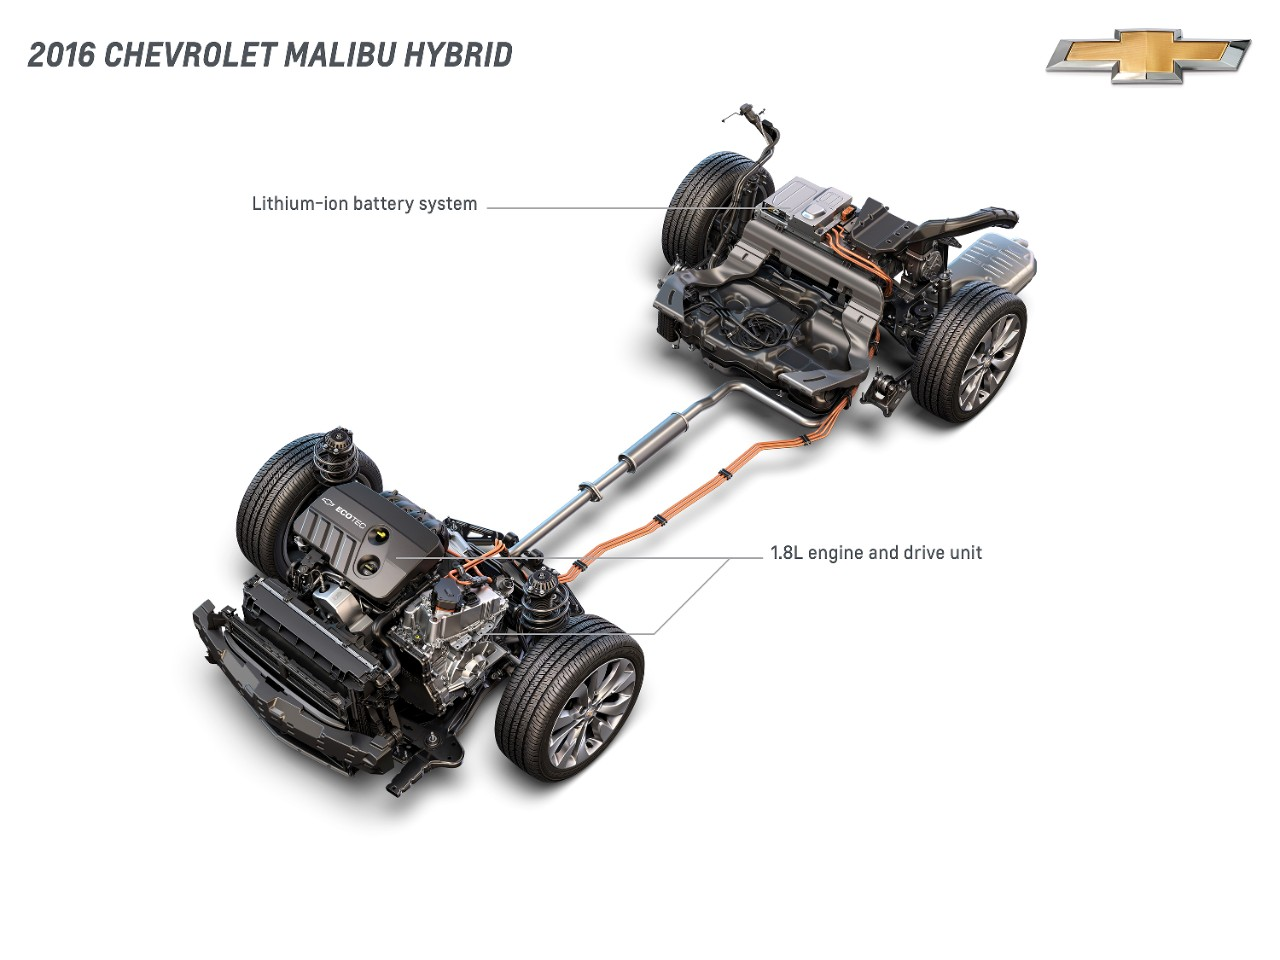 2016 Chevrolet Malibu Hybrid powertrain